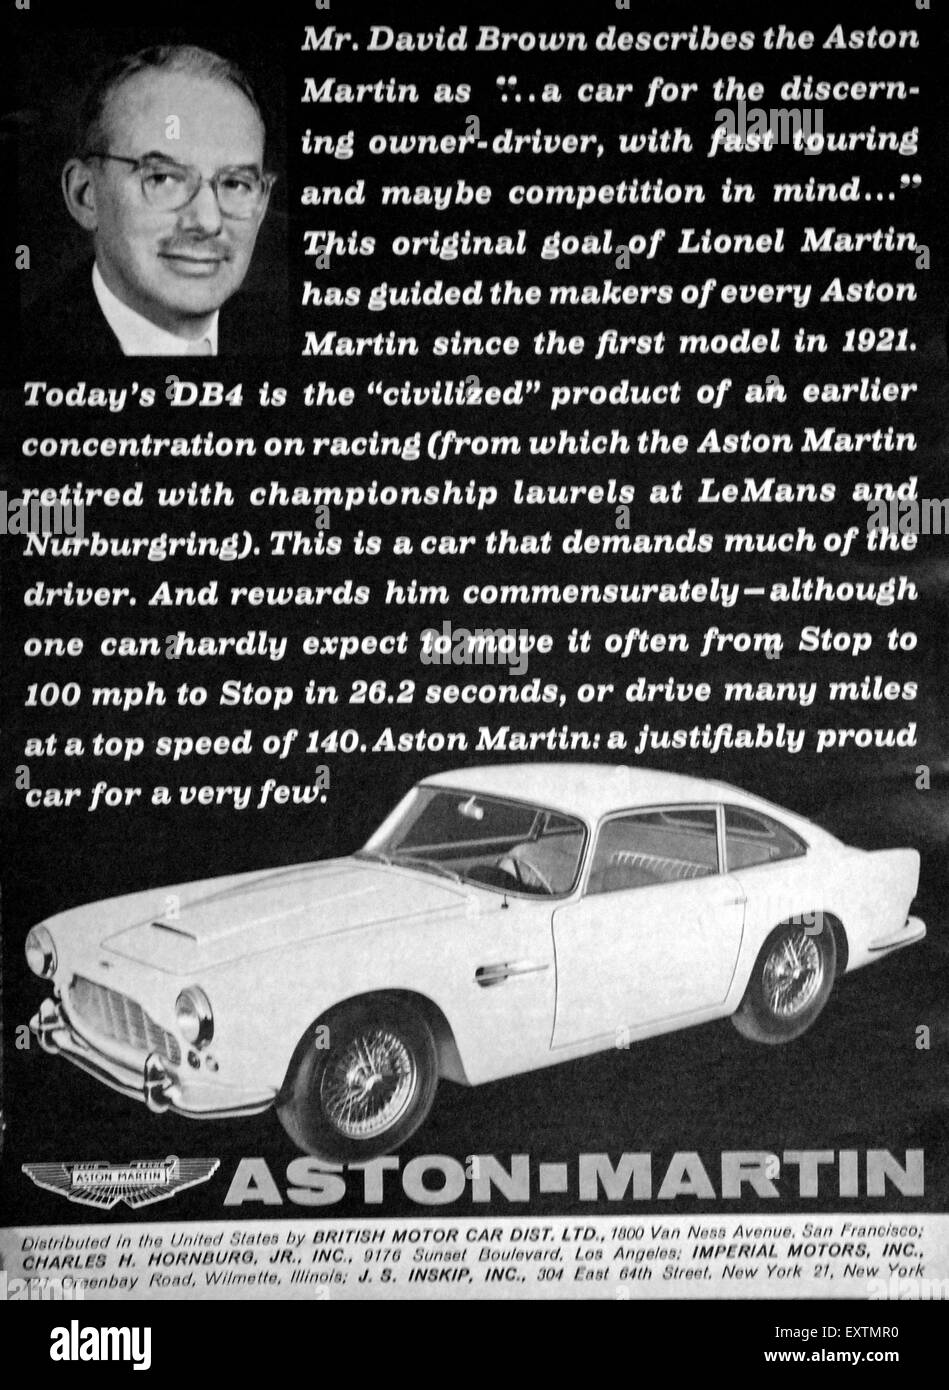 1960s usa aston martin magazine advert stock photo: 85365700 - alamy